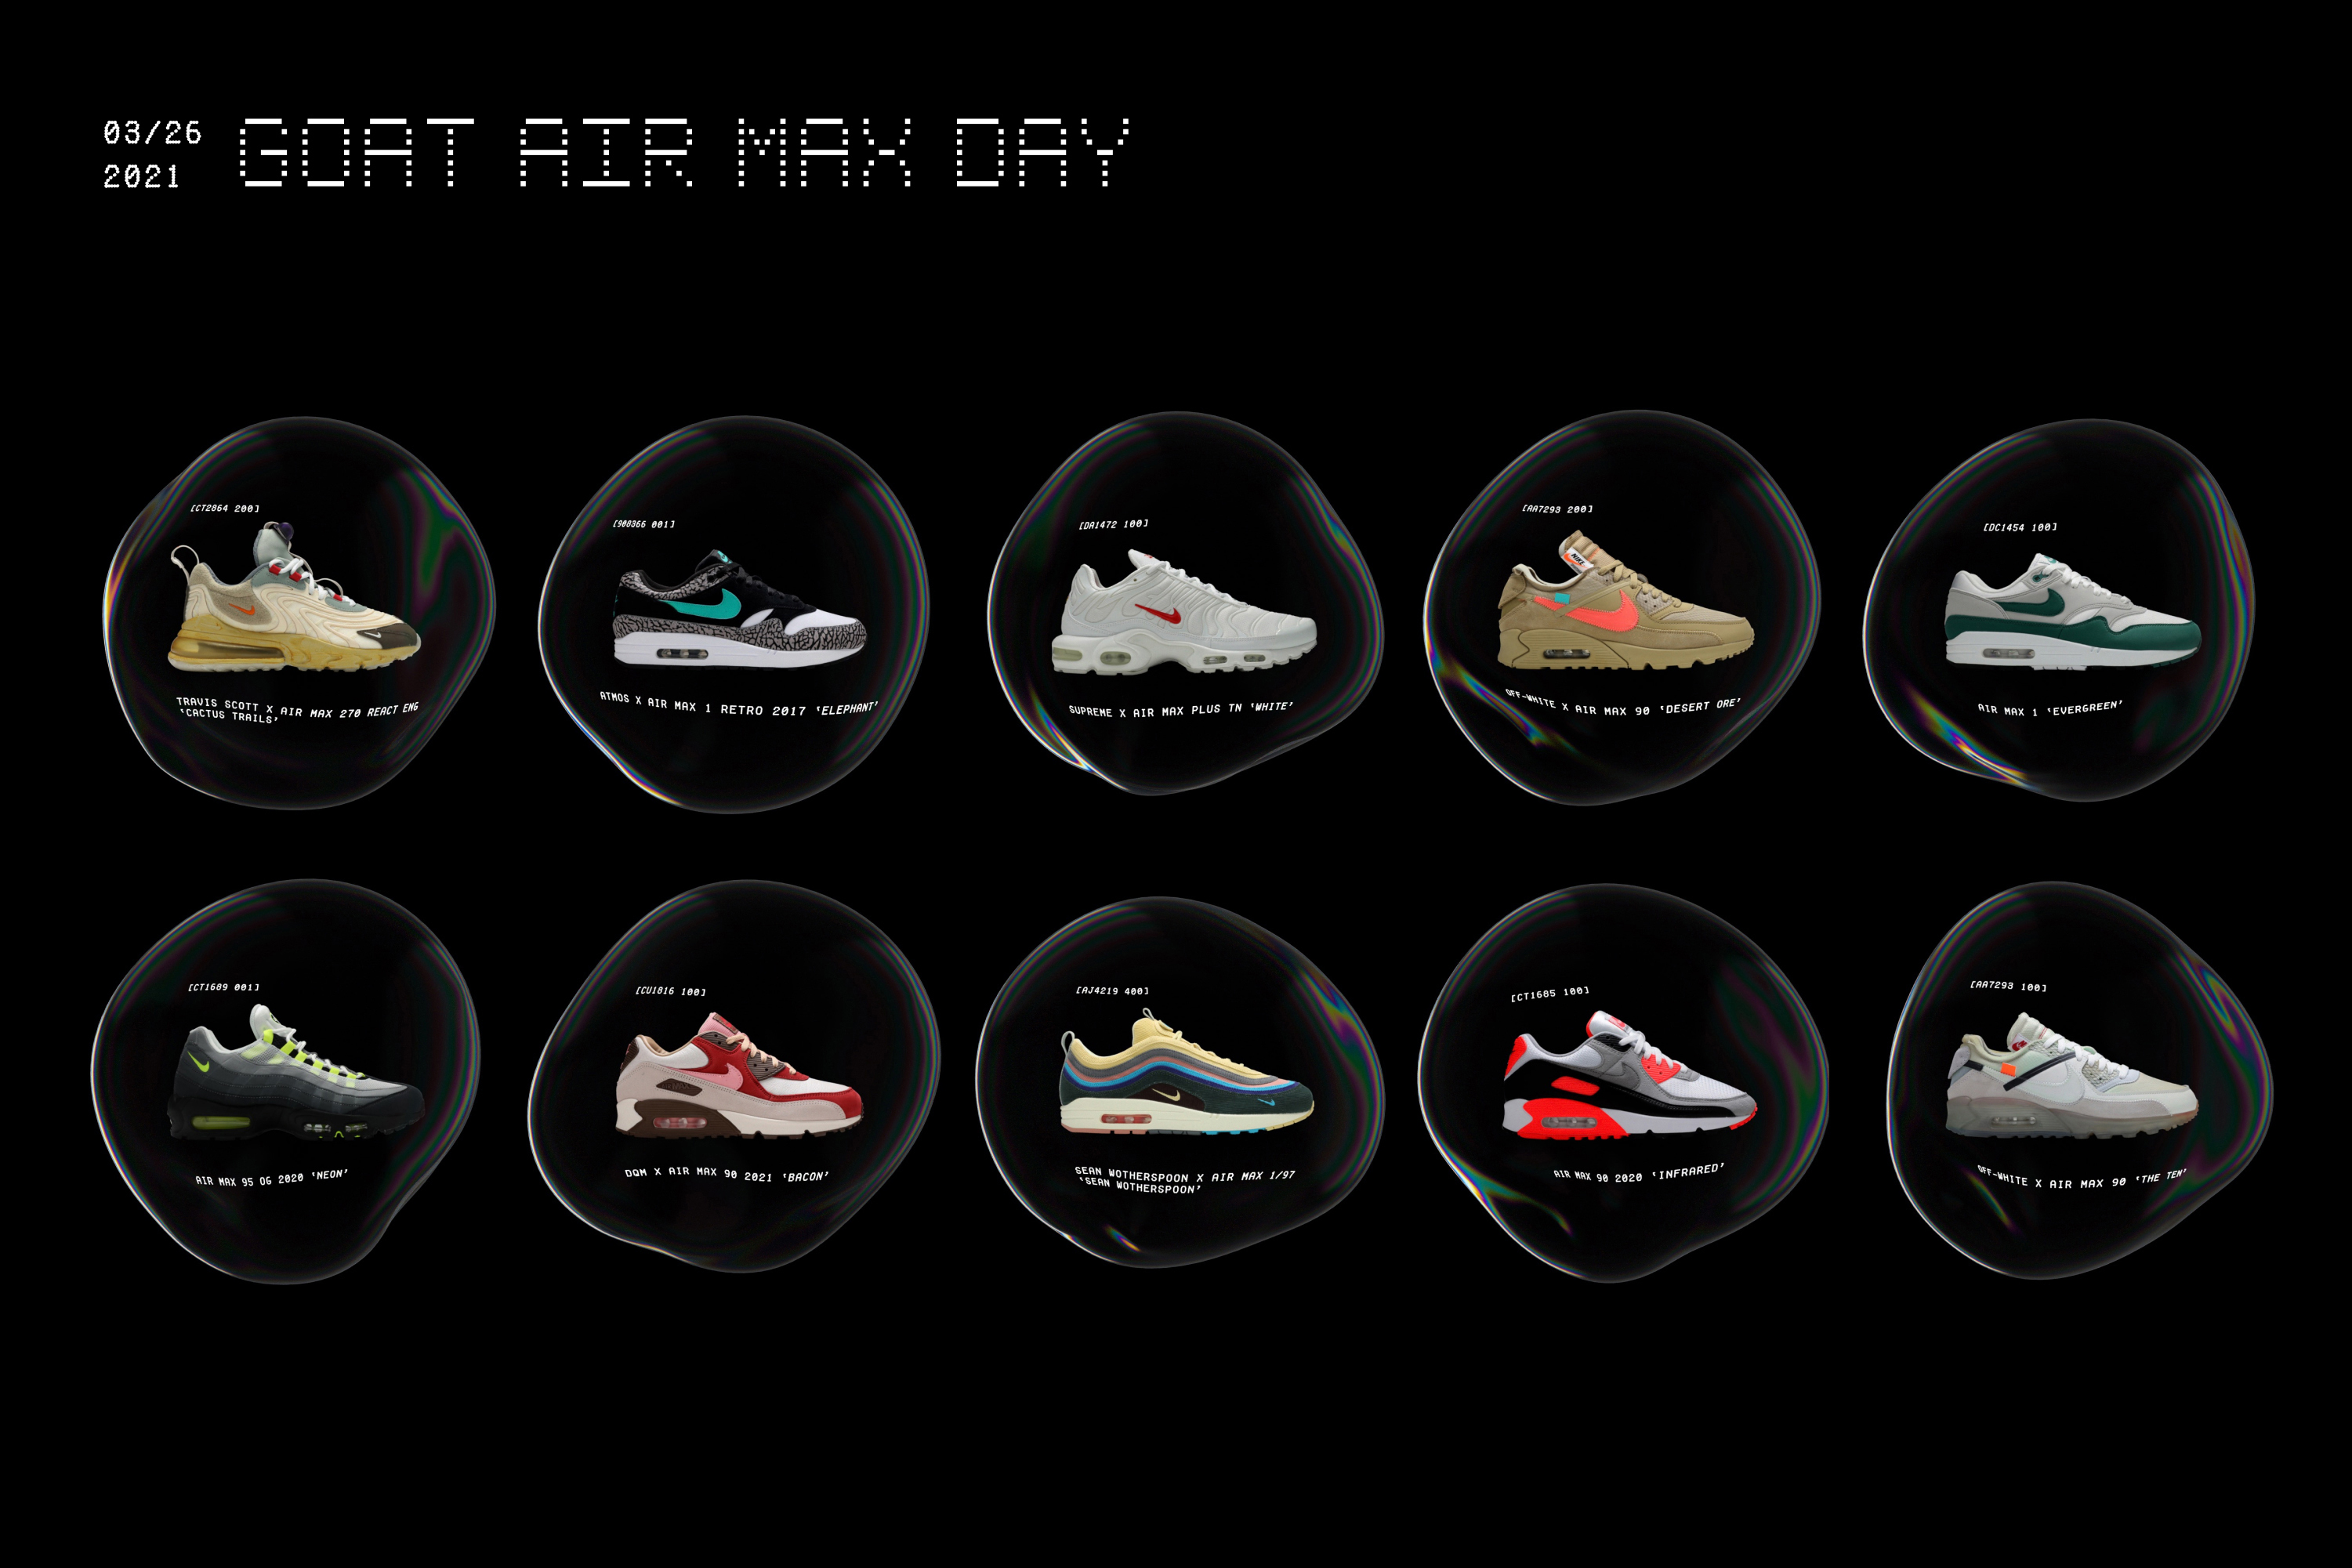 GOAT X Air Max Day 2021